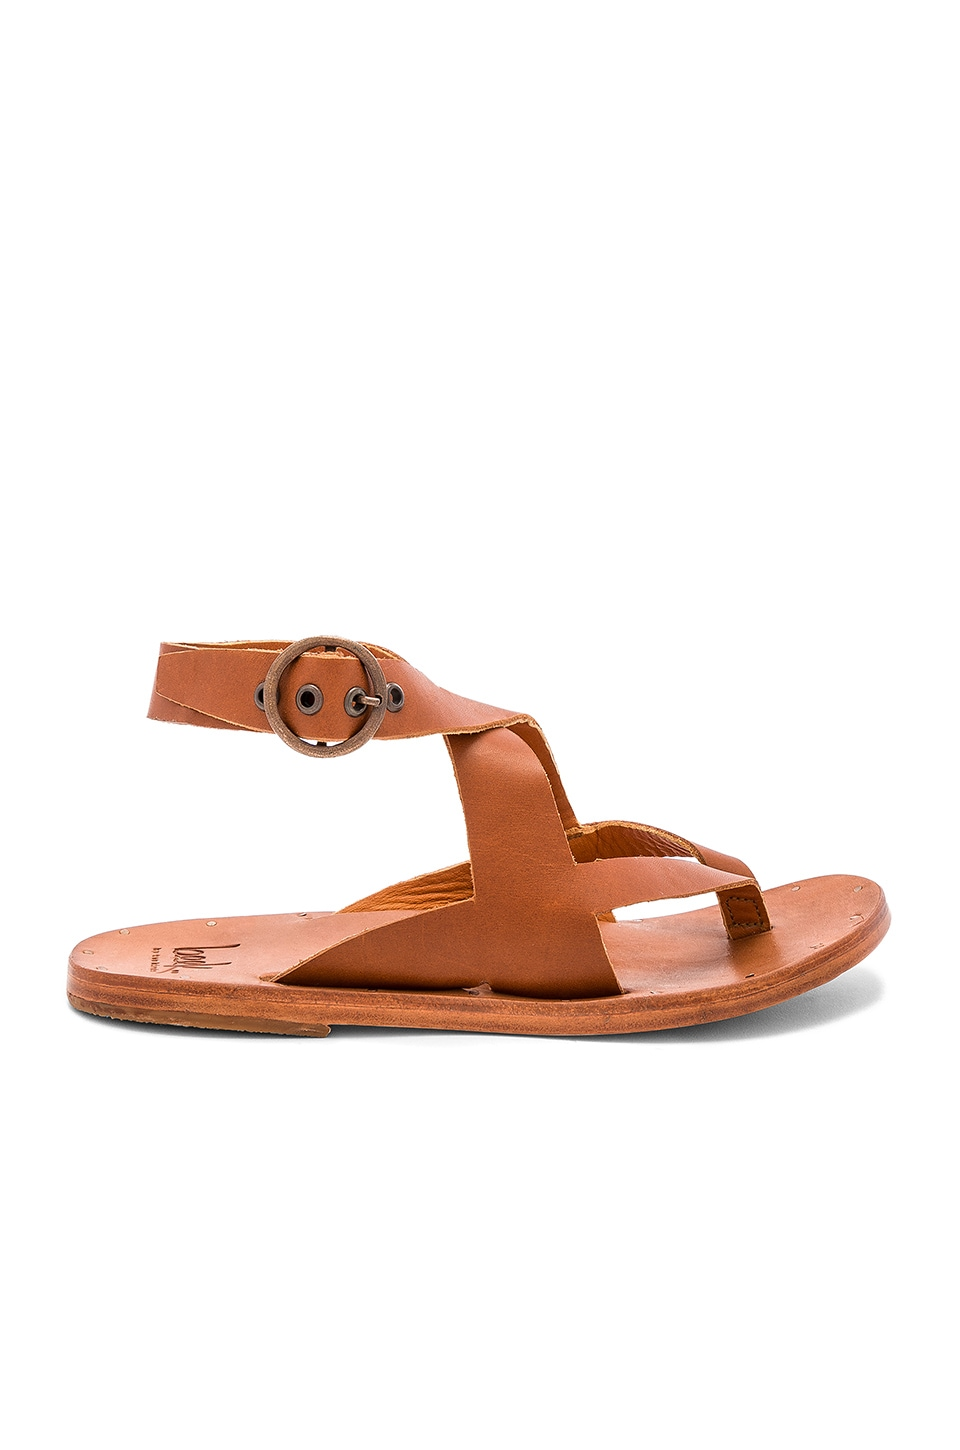 beek women ★ beek seagull mule (women) @ today deals womens mules amp slides, shop sale price today and get up to 30-70% off [beek seagull mule (women)] find this season s must-have styles from top brands order online today check our reviews before you buy.